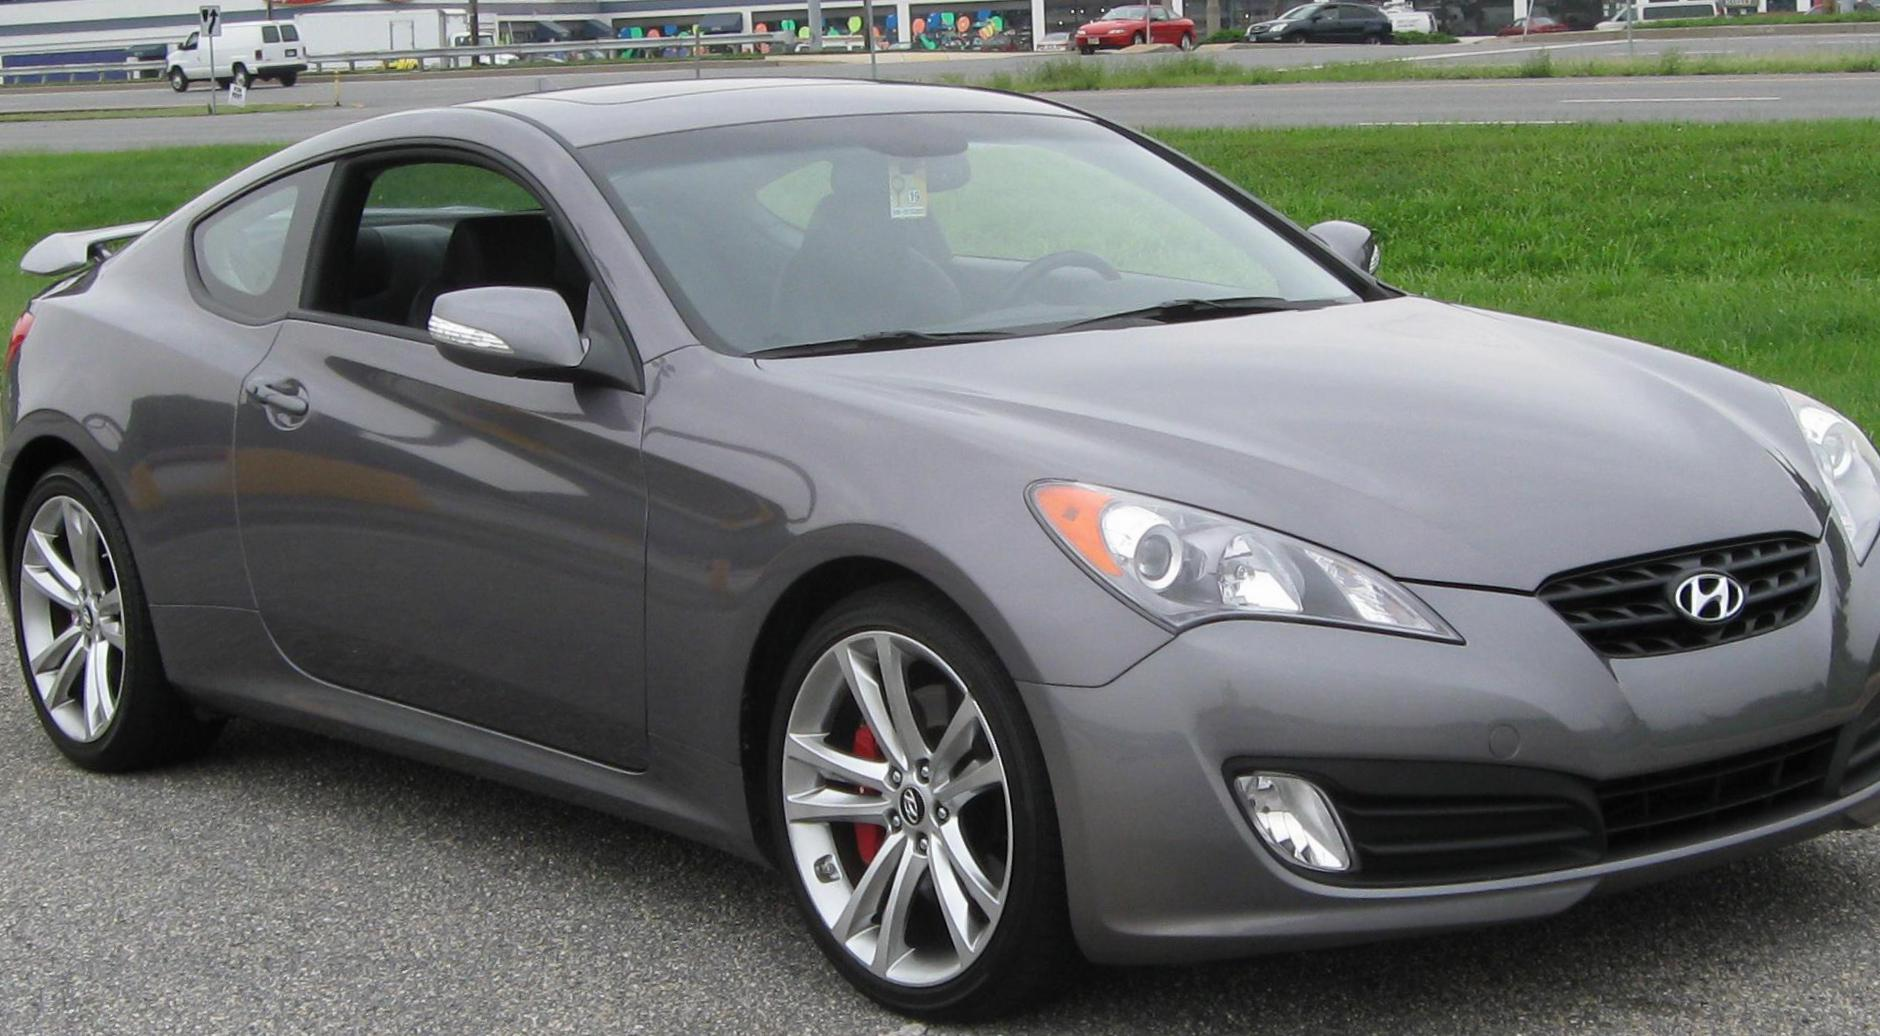 Genesis Coupe Hyundai how mach 2012